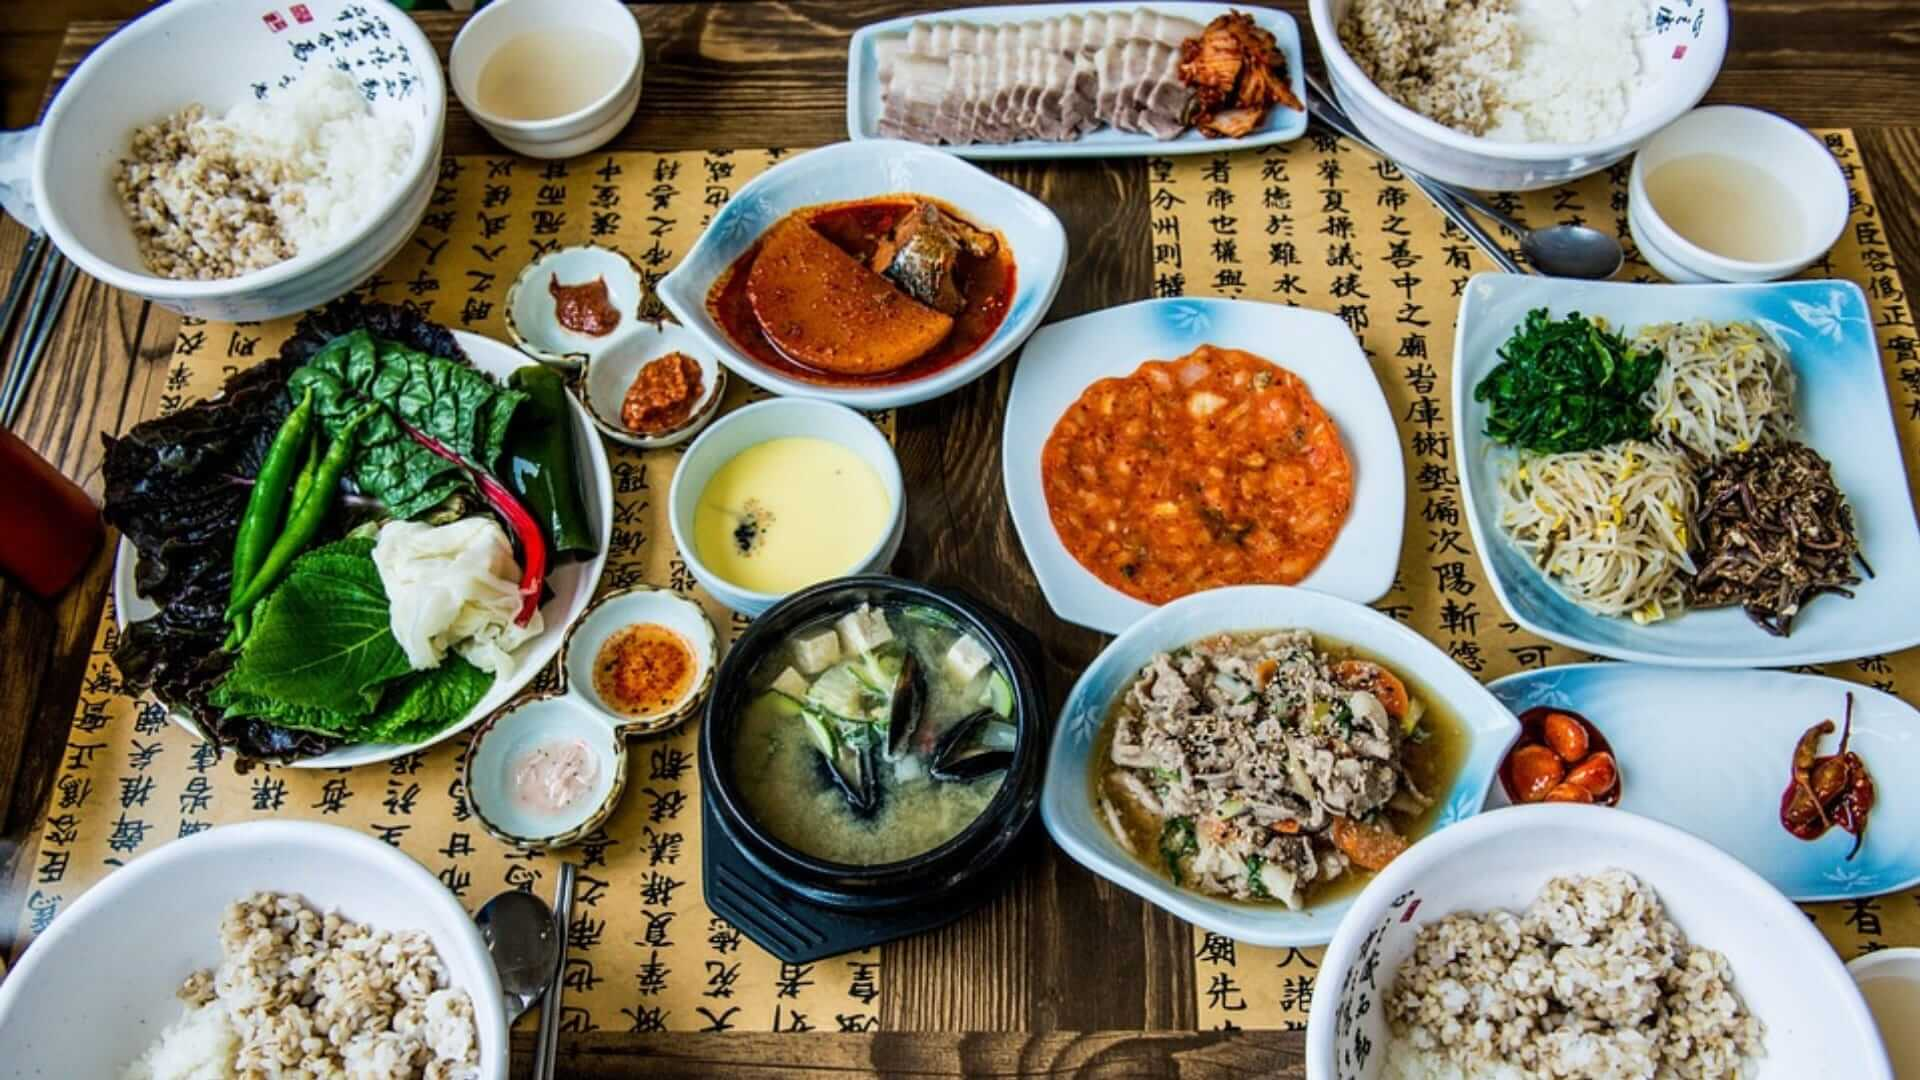 Many different plates with Korean food are laying on a table with Korean characters on it in Seoul.